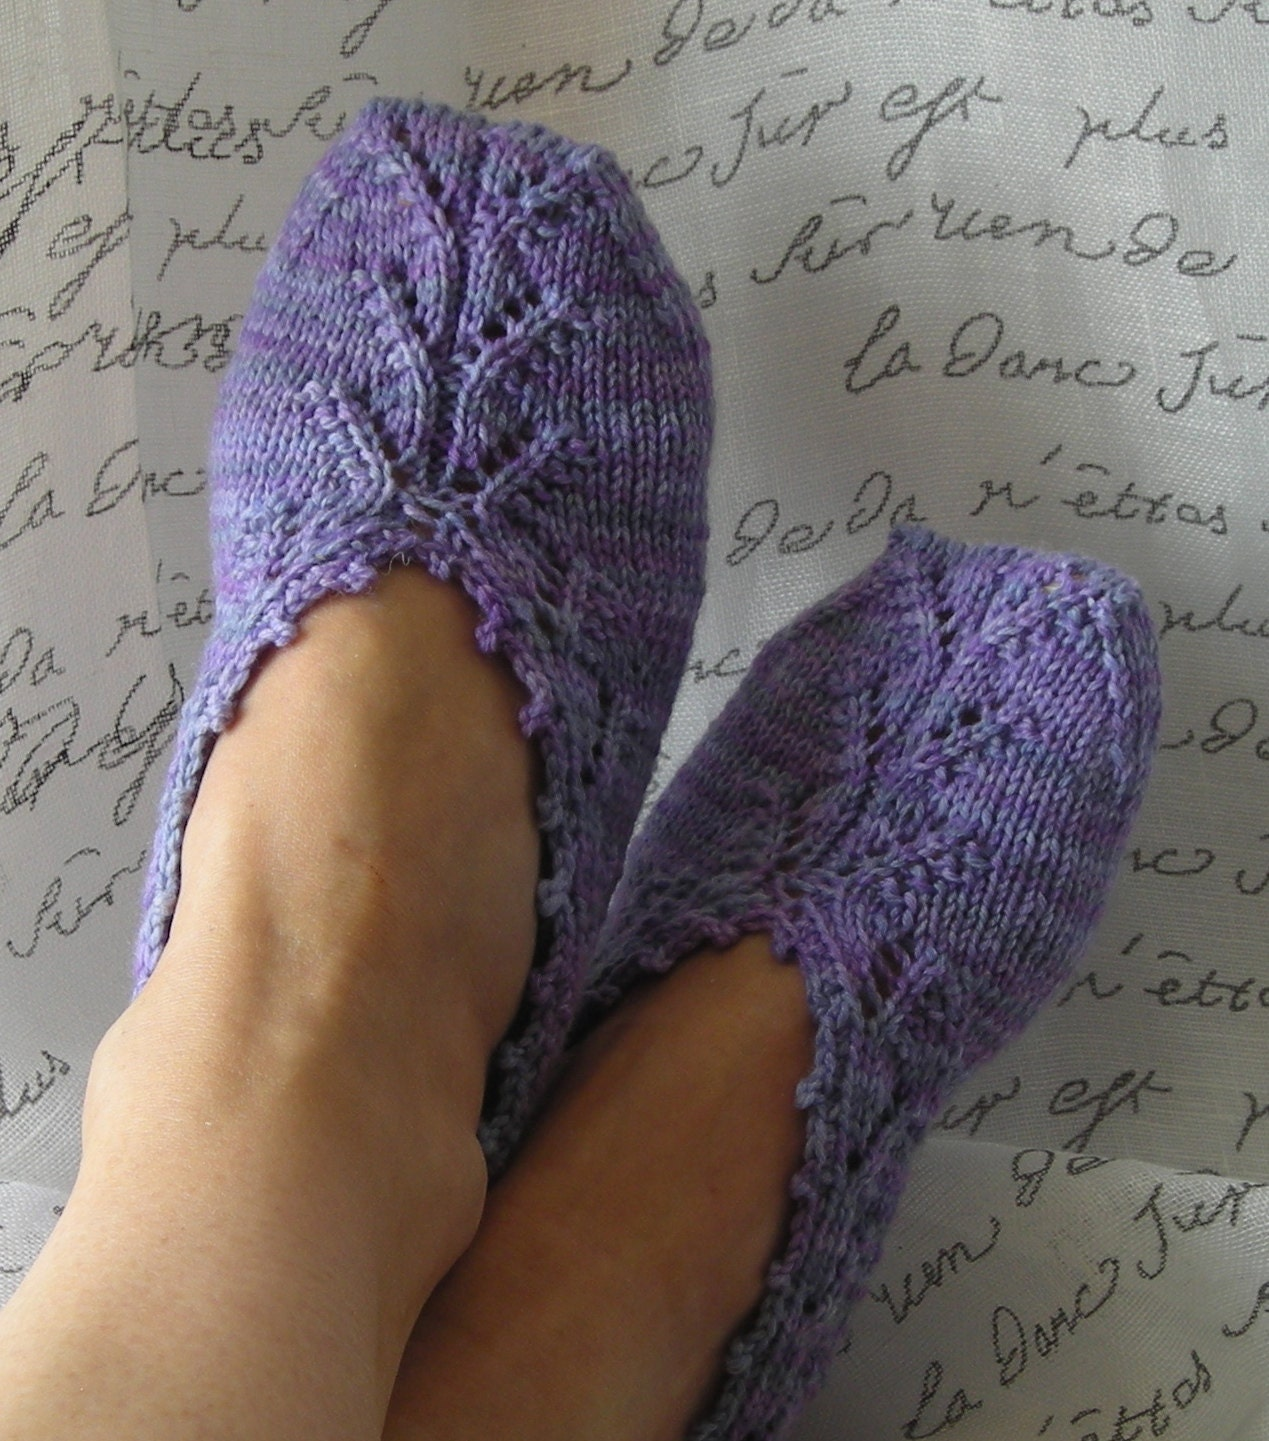 Knitting pattern pdf slipper socks chausettes de lavande knitting pattern pdf slipper socks chausettes de lavande lavender socks womens slippers easy quick knit diy valentines day gift dt1010fo